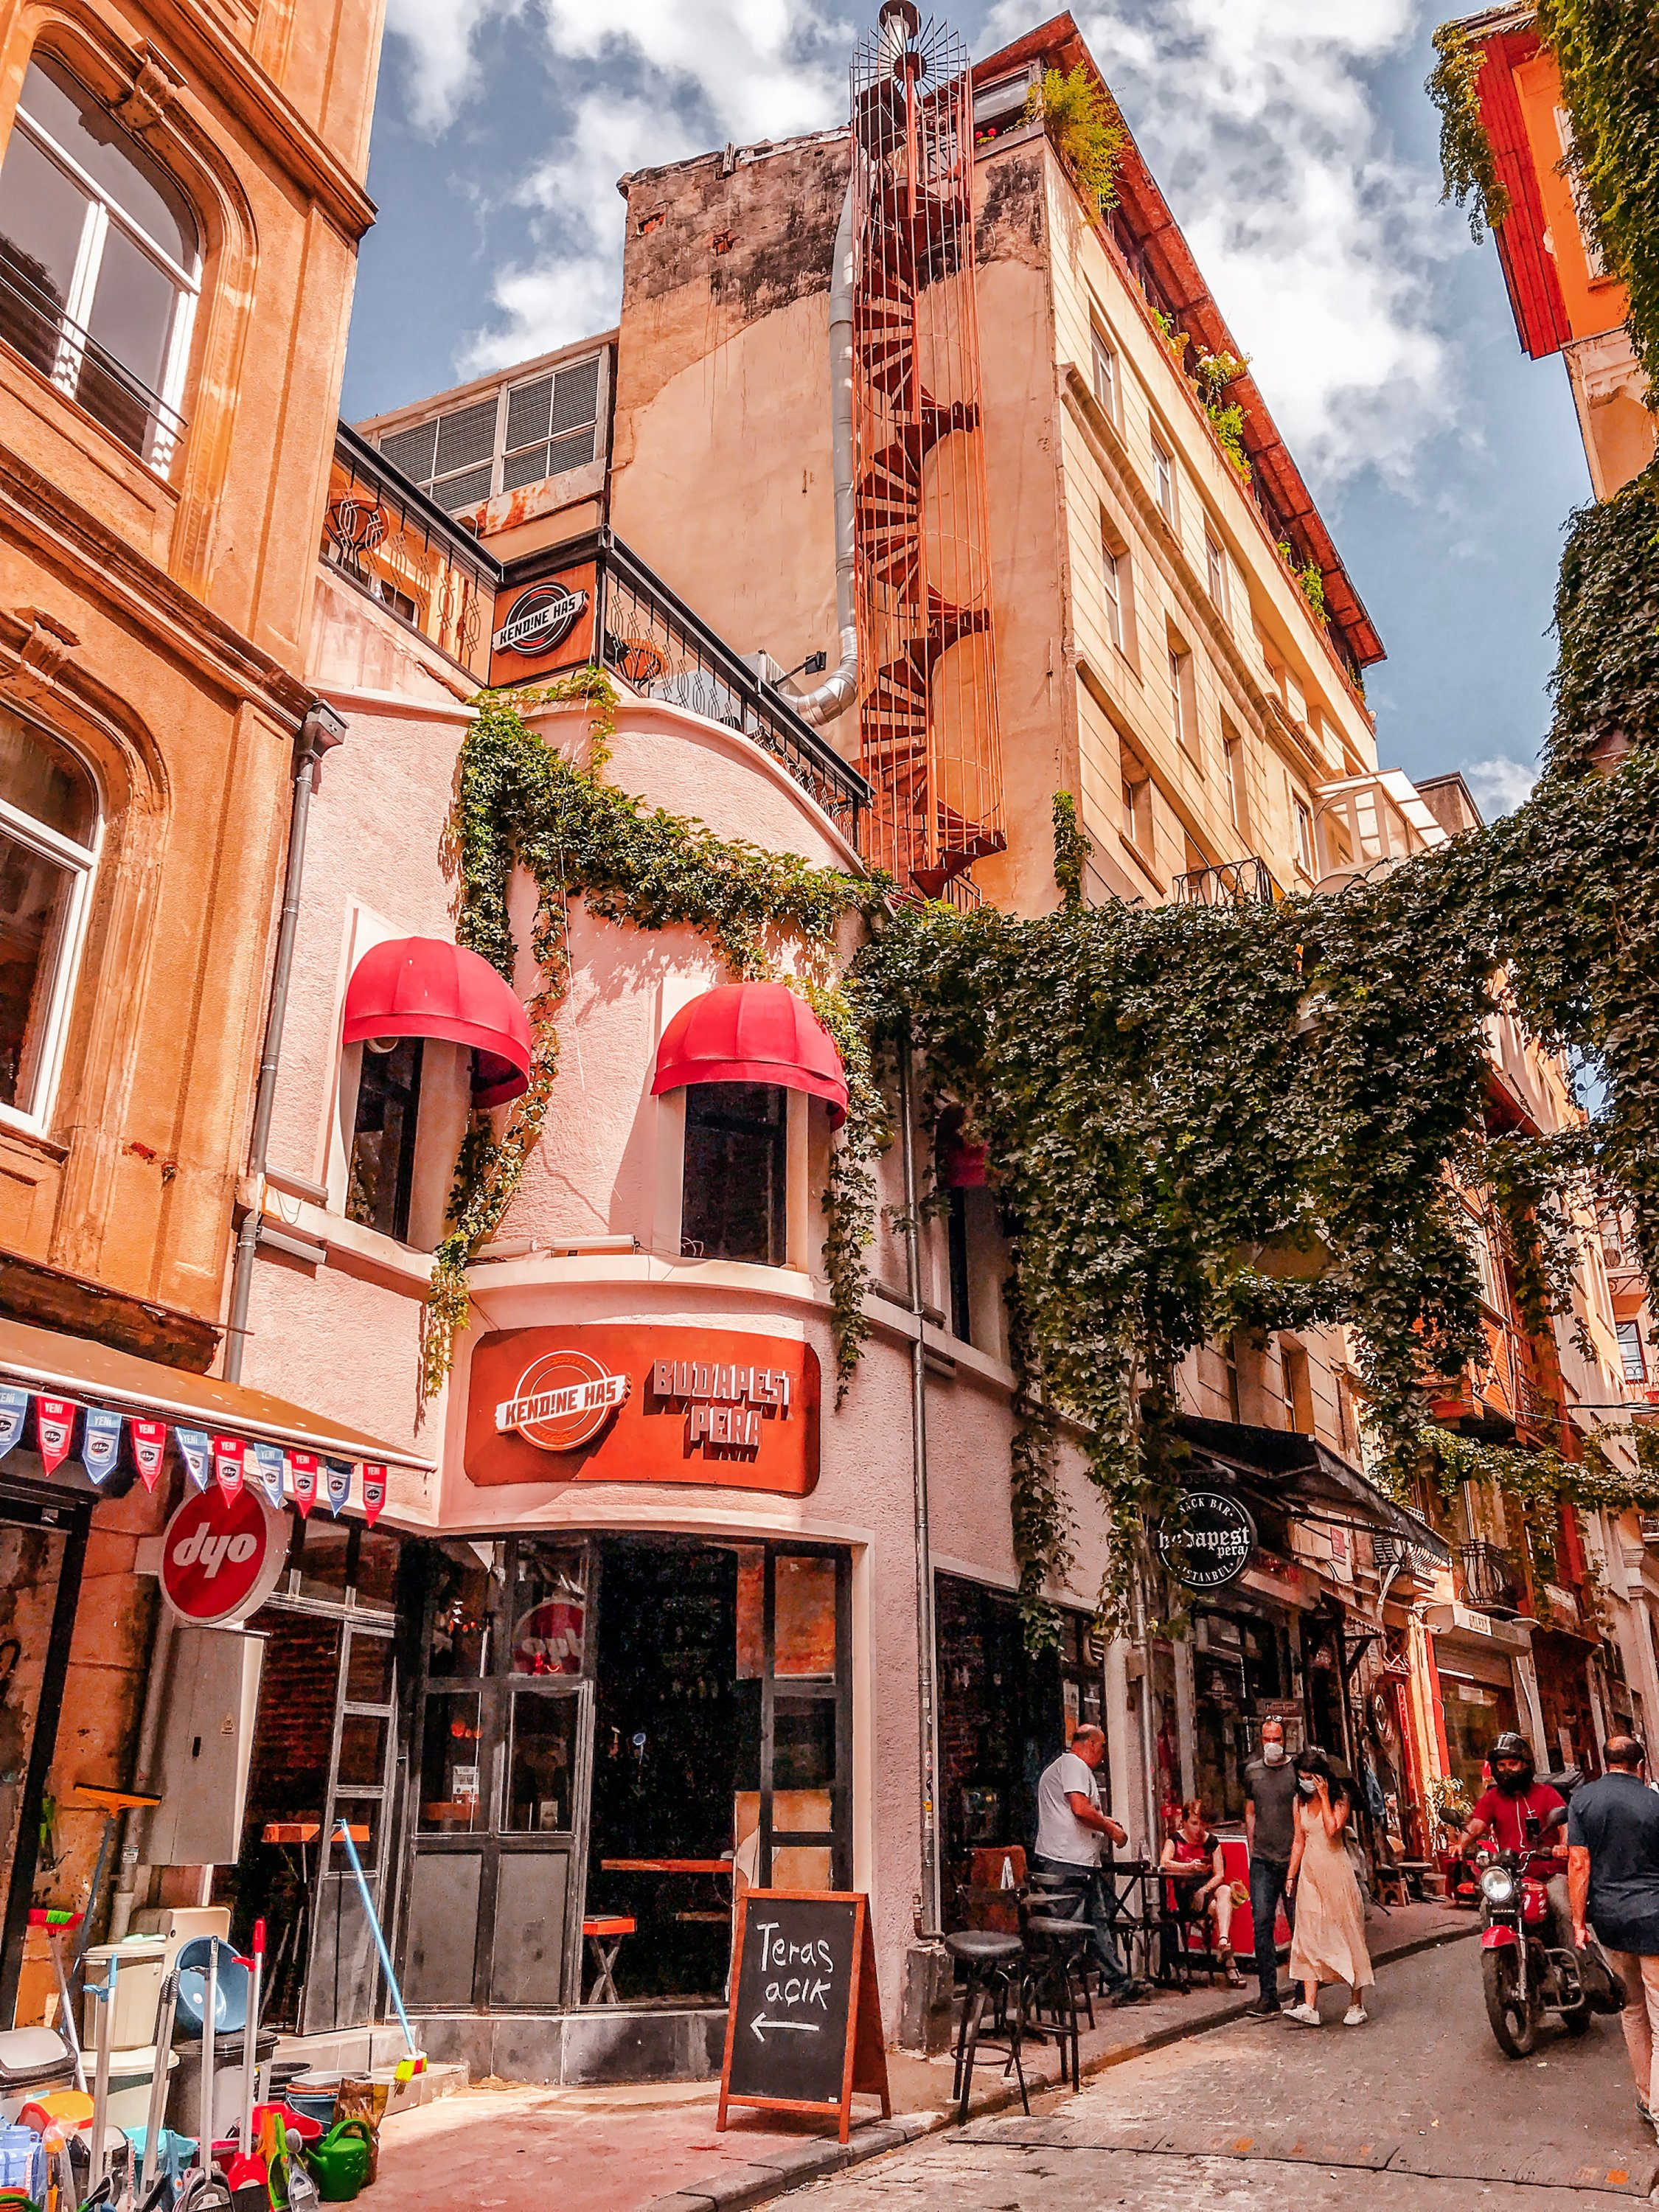 View from Istanbul streets showing the architecture on the European side of Turkey's largest and most populated city in Asmalımescit district, June 6, 2020. (Shutterstock Photo)